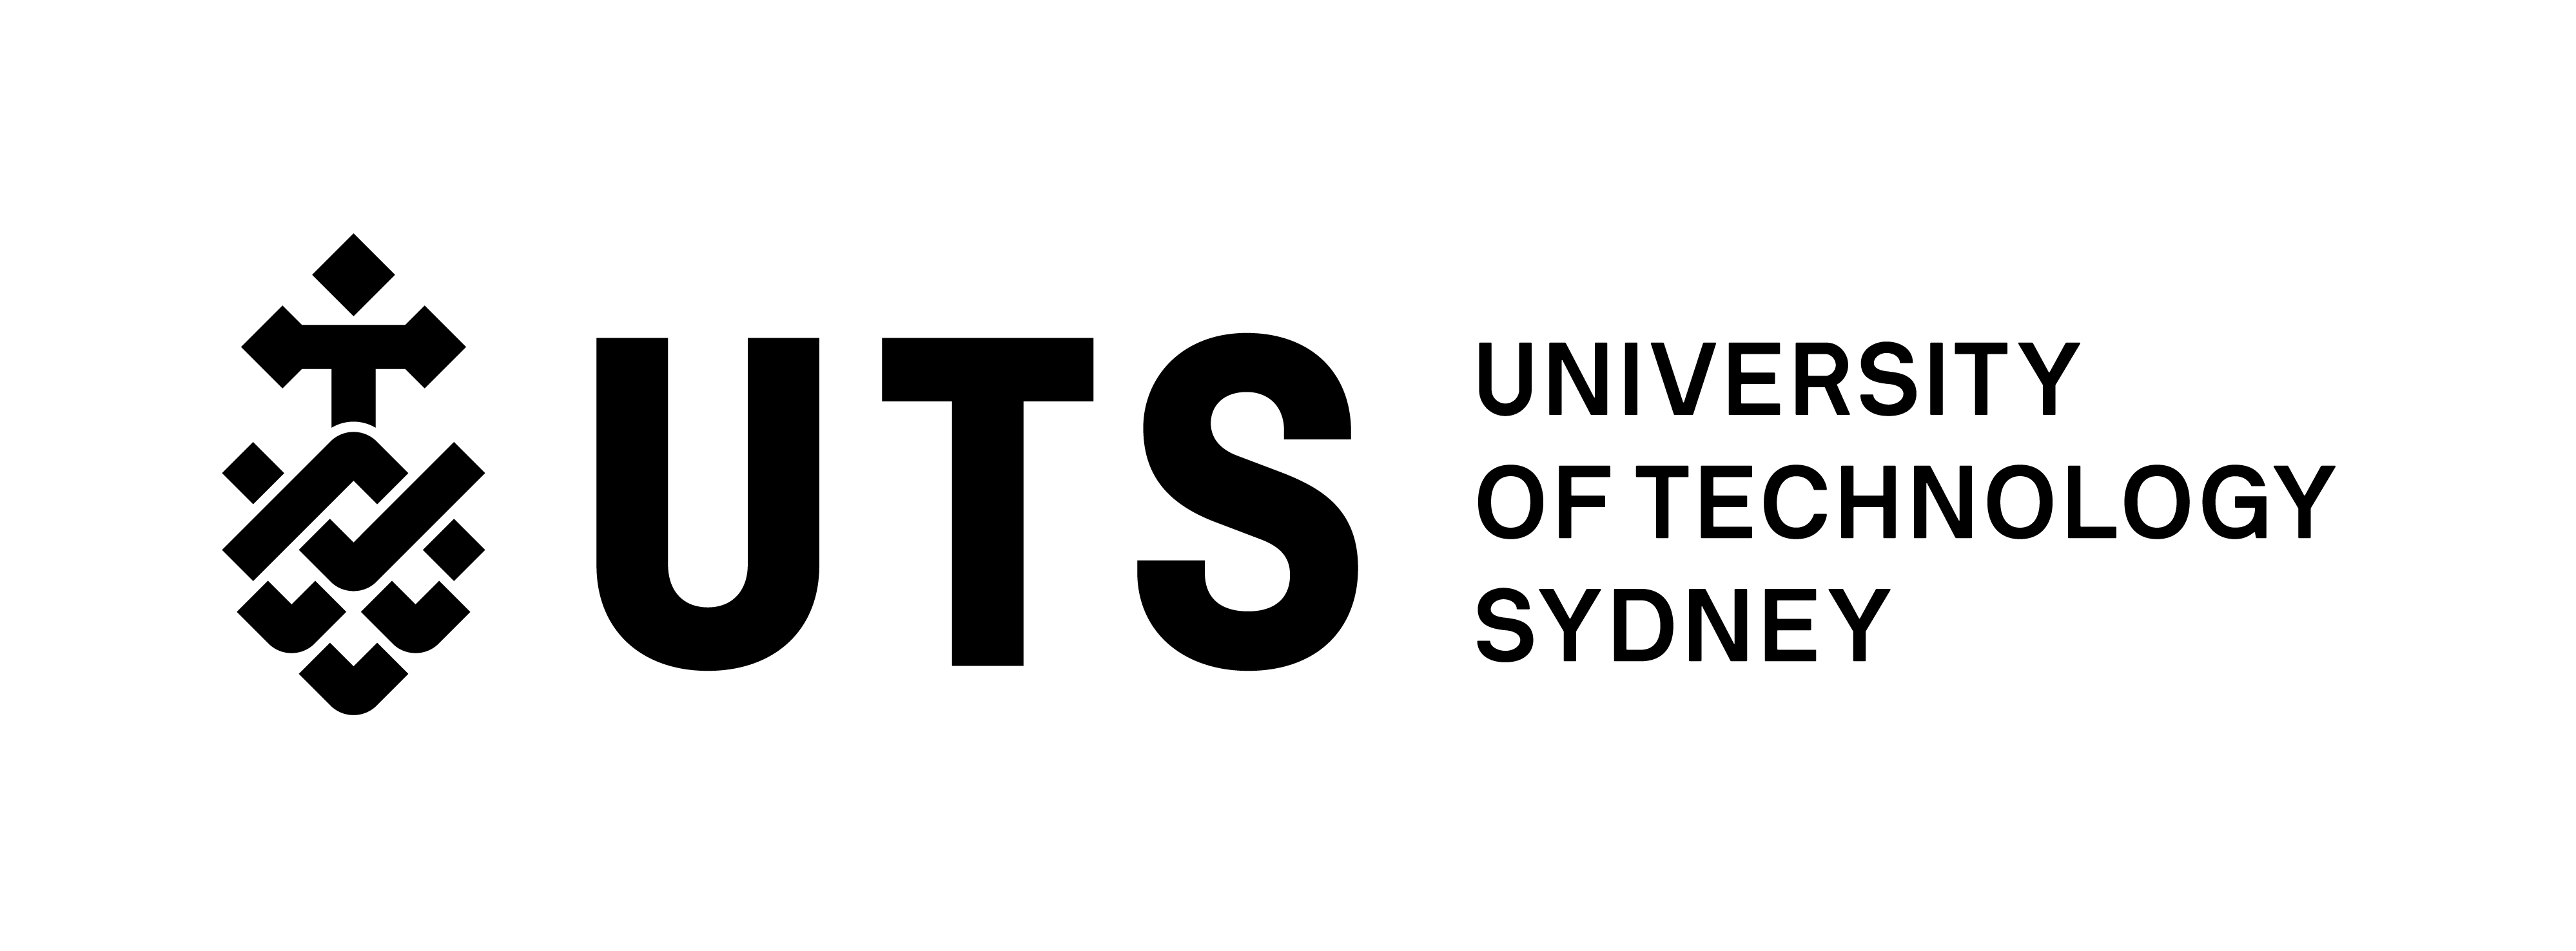 University of Technology Sydney - Graduate Certificate in Science